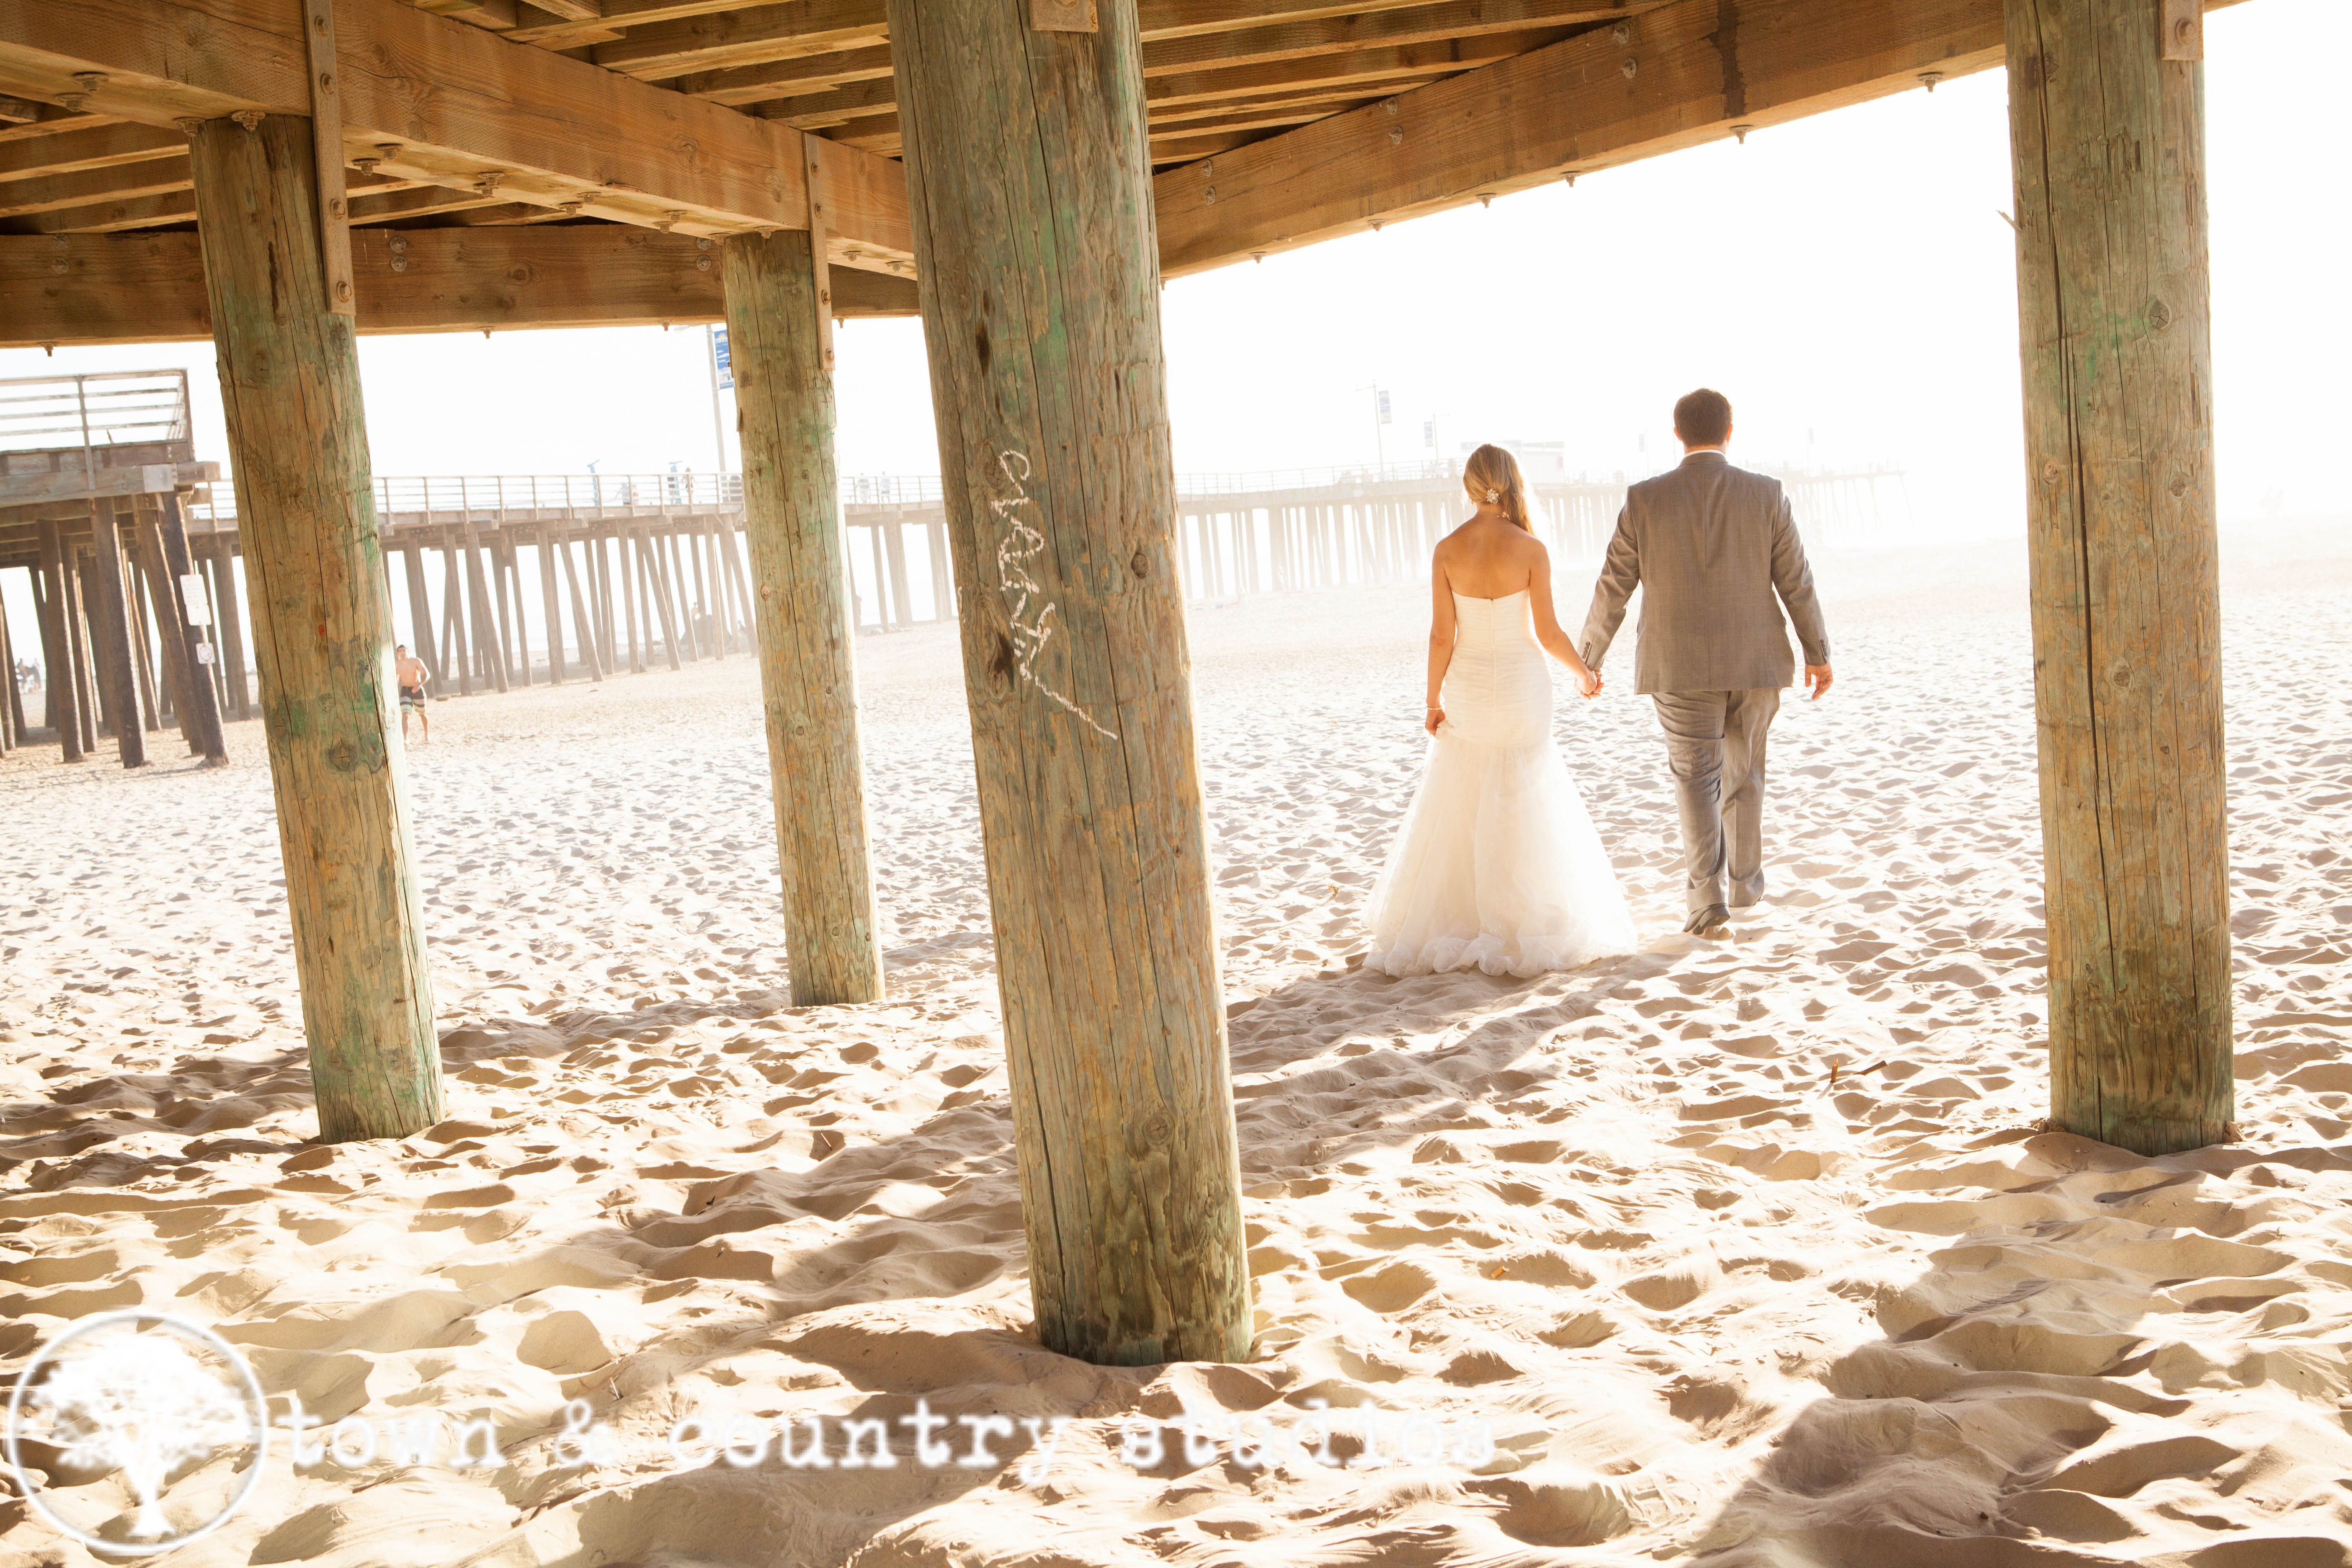 Beach wedding sand ceremony sets  Walking away from the pier hand in hand  Our Beach Wedding Images